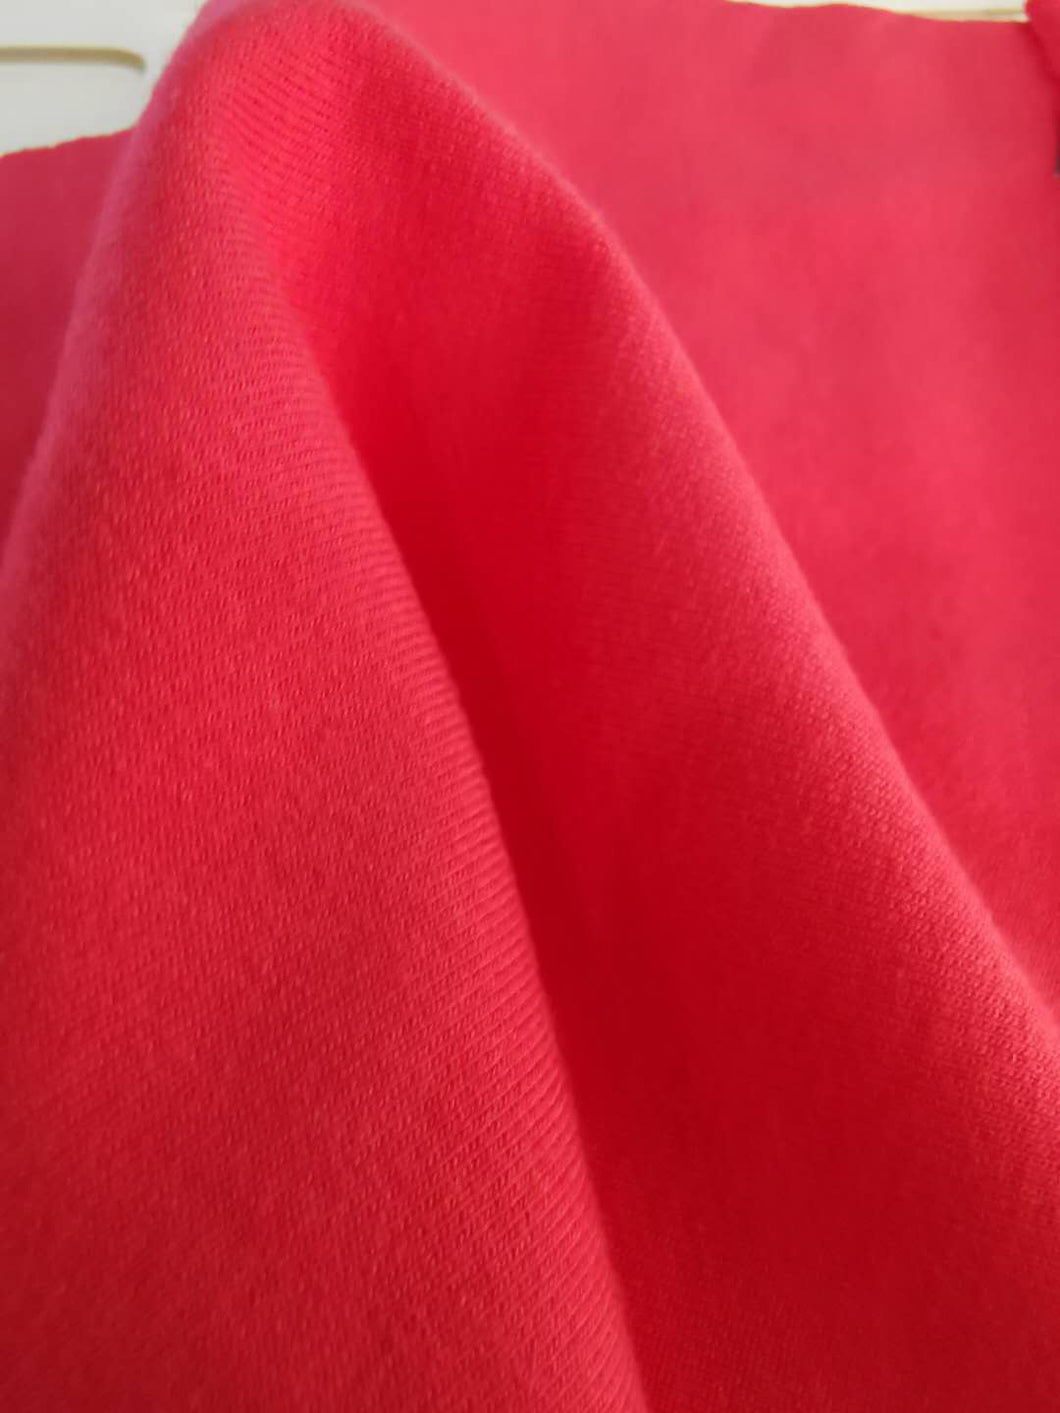 High Quality Multi Color Knitted Plain Dyed Elastic Bamboo Knitted Sweater Fabric 68% Bamboo Fiber 27% Cotton 5% Spandex